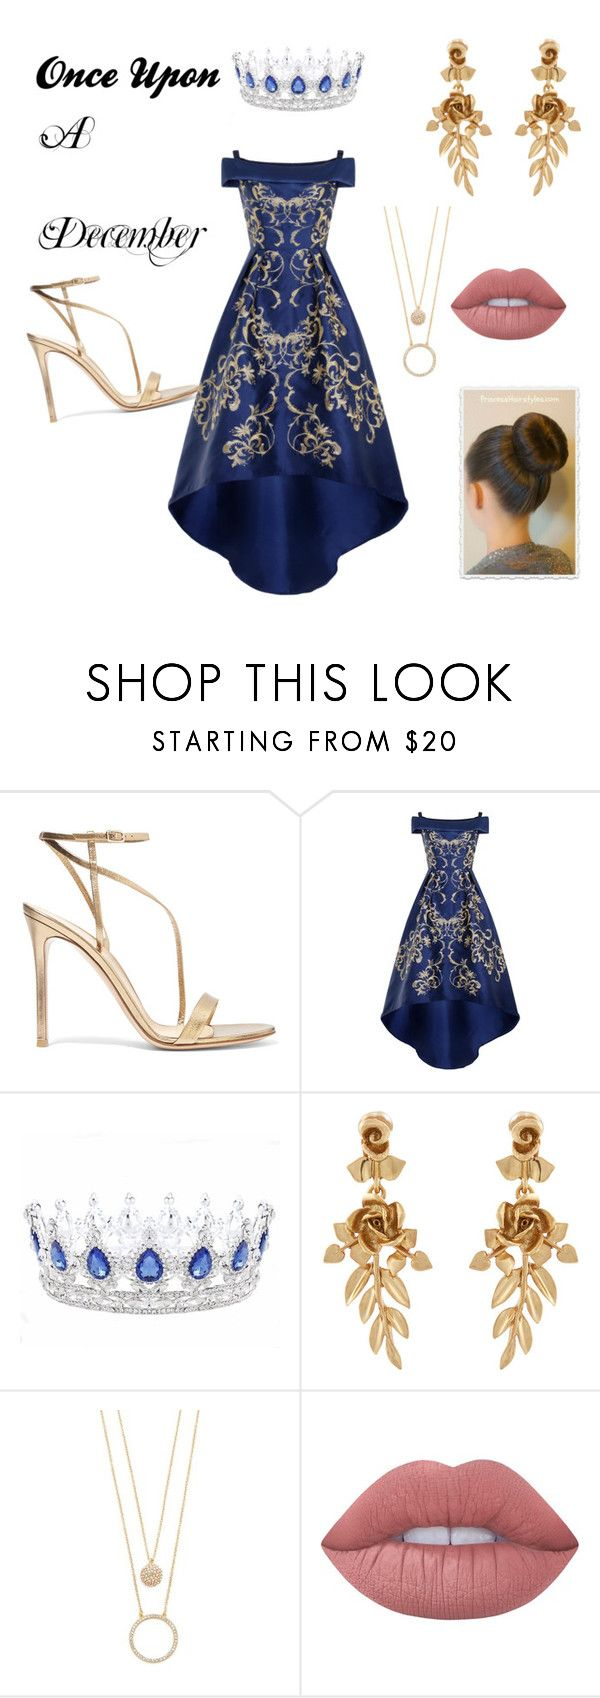 """""""Princess Anastasia"""" by emma-on-broadway ❤ liked on Polyvore featuring Gianvito Rossi, Chi Chi, Oscar de la Renta, Kate Spade and Lime Crime"""